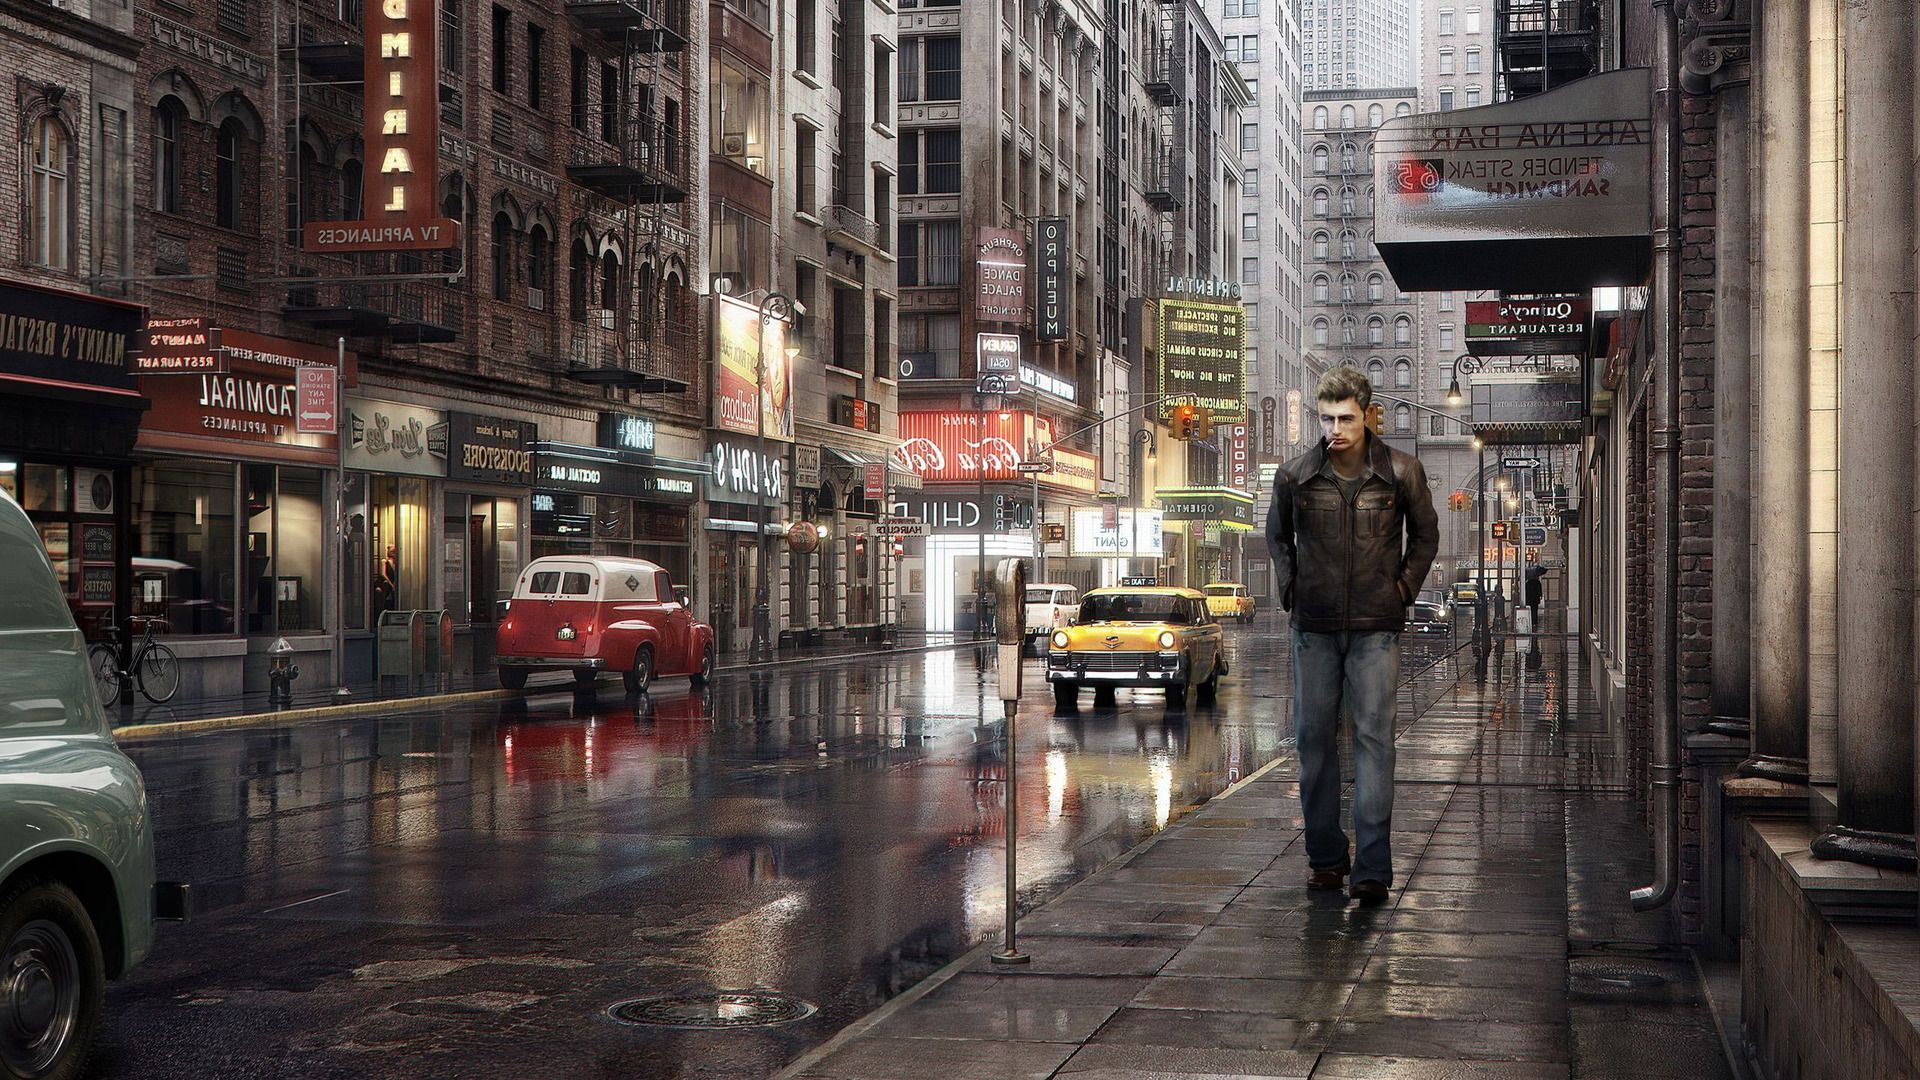 Lonely Man In The City Wallpaper City Wallpaper Lonely Man Wallpaper